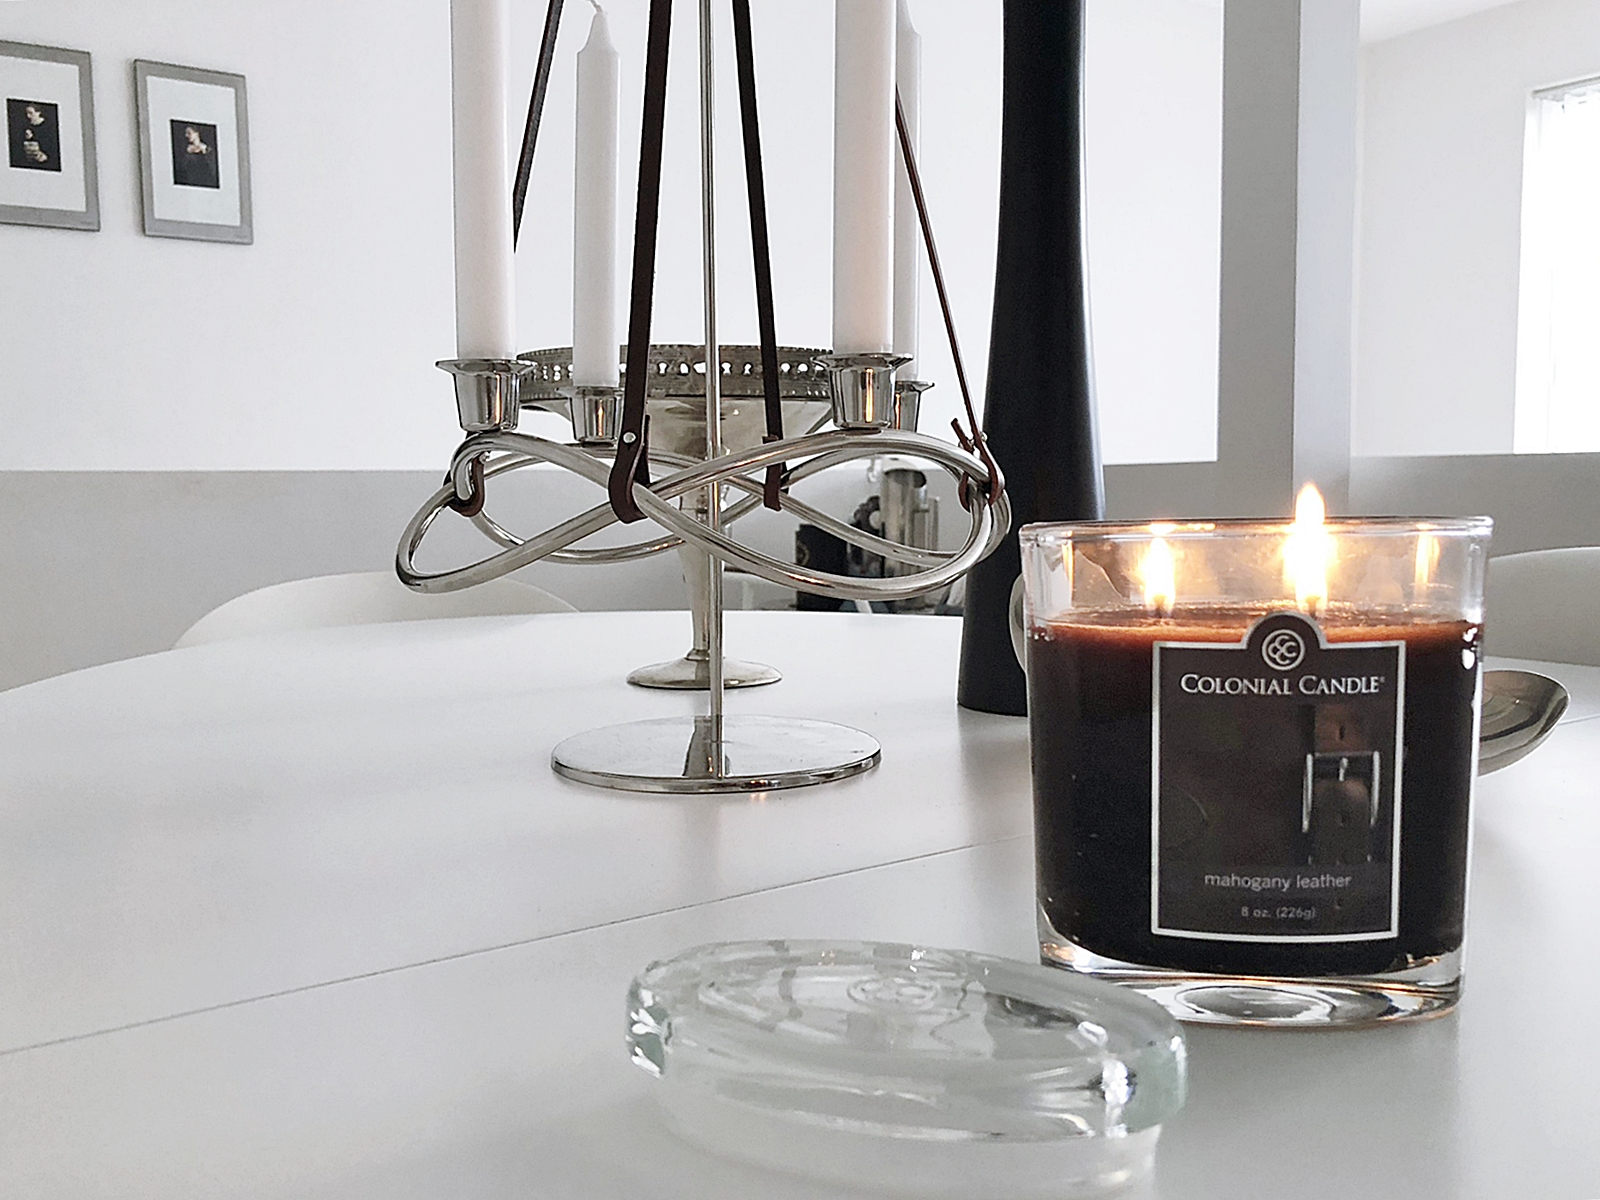 Colonial Candle med doftern Mahogany leather